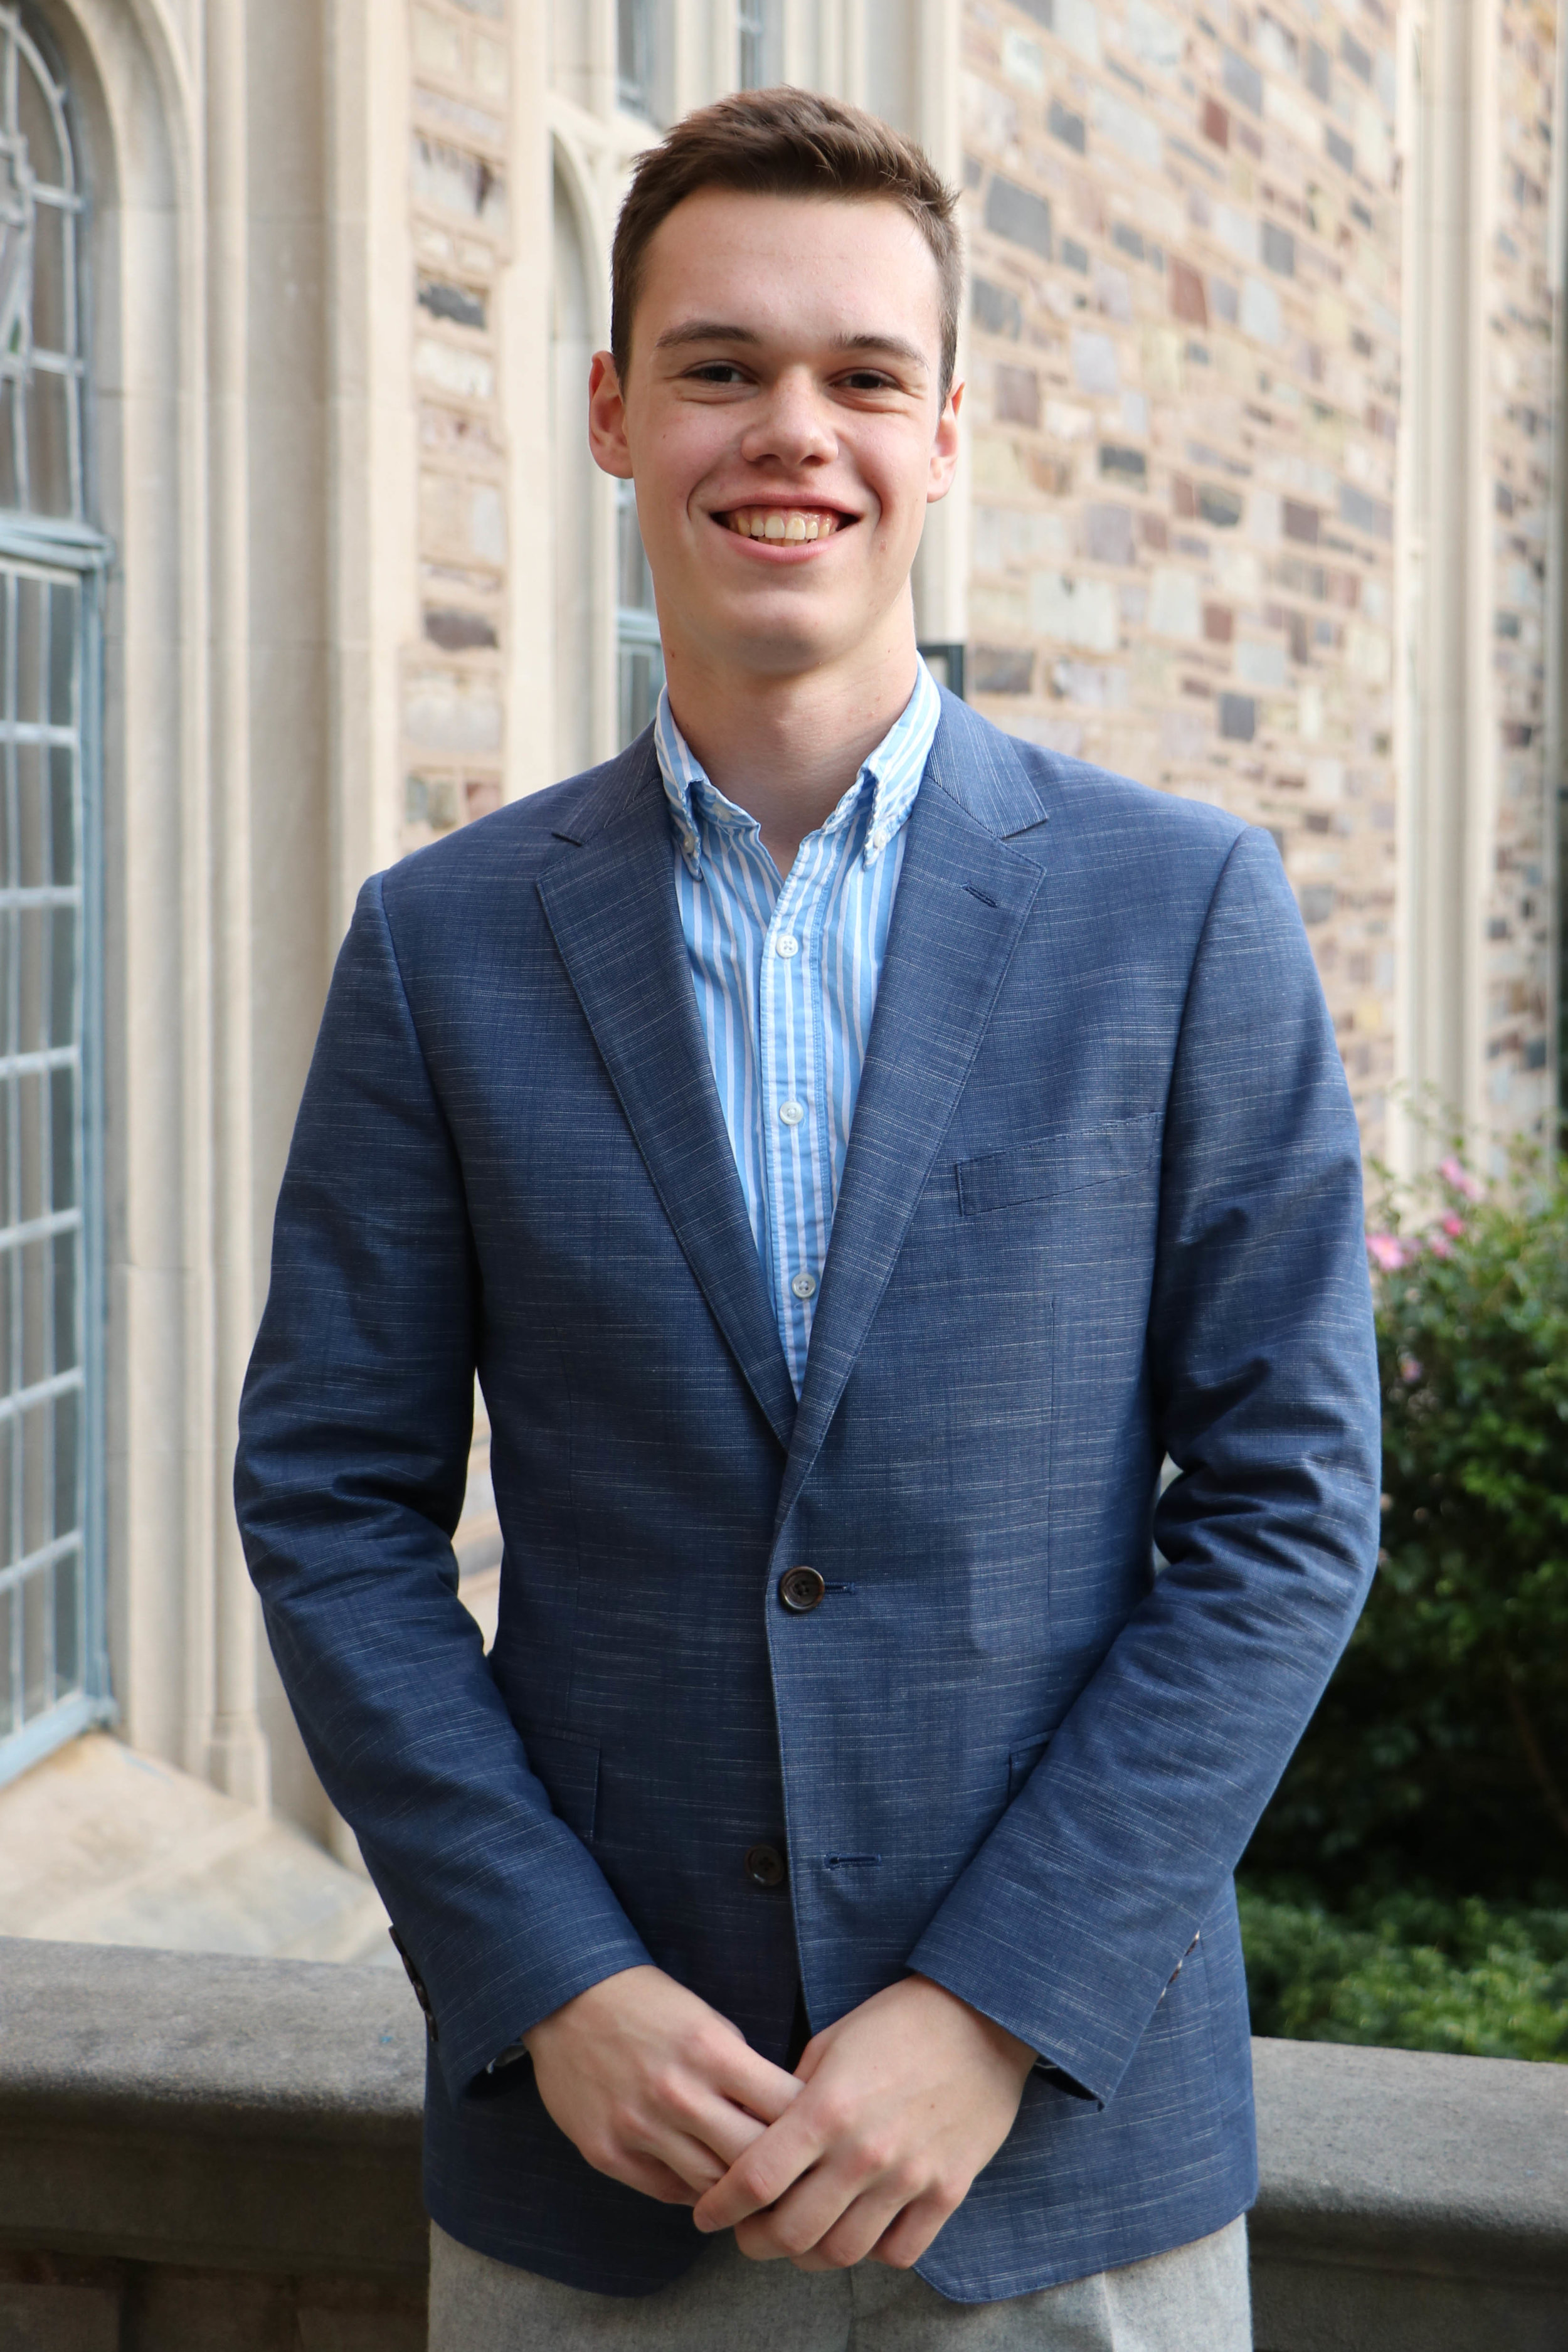 CHRIS WALTON   Chris Walton is a Sophomore from Pennington, New Jersey, majoring in Politics with a focus on international relations. Chris became involved with PUCC after spending last Summer in China teaching at a Model UN camp, during which he spent time in Shanghai, Beijing, and Hong Kong. His academic interests include conflict studies, human rights, and Eastern European politics. Outside of PUCC, he Co-Chairs Rocky College Council, is a member of the lightweight rowing team, and is on the USG Campus and Community Affairs Committee.